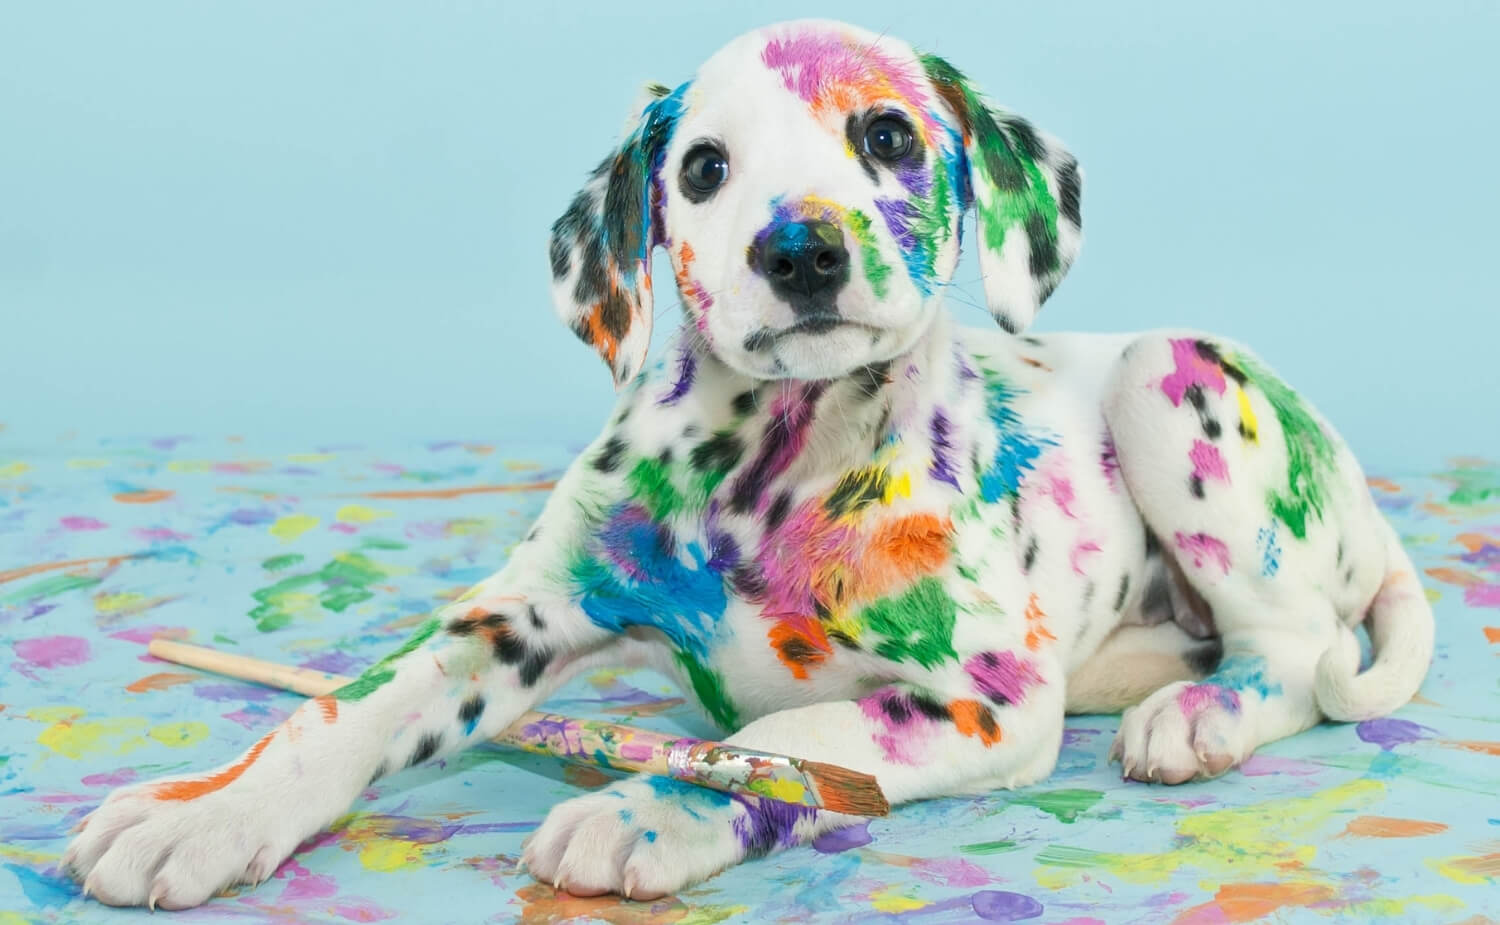 naughty puppy got into paint